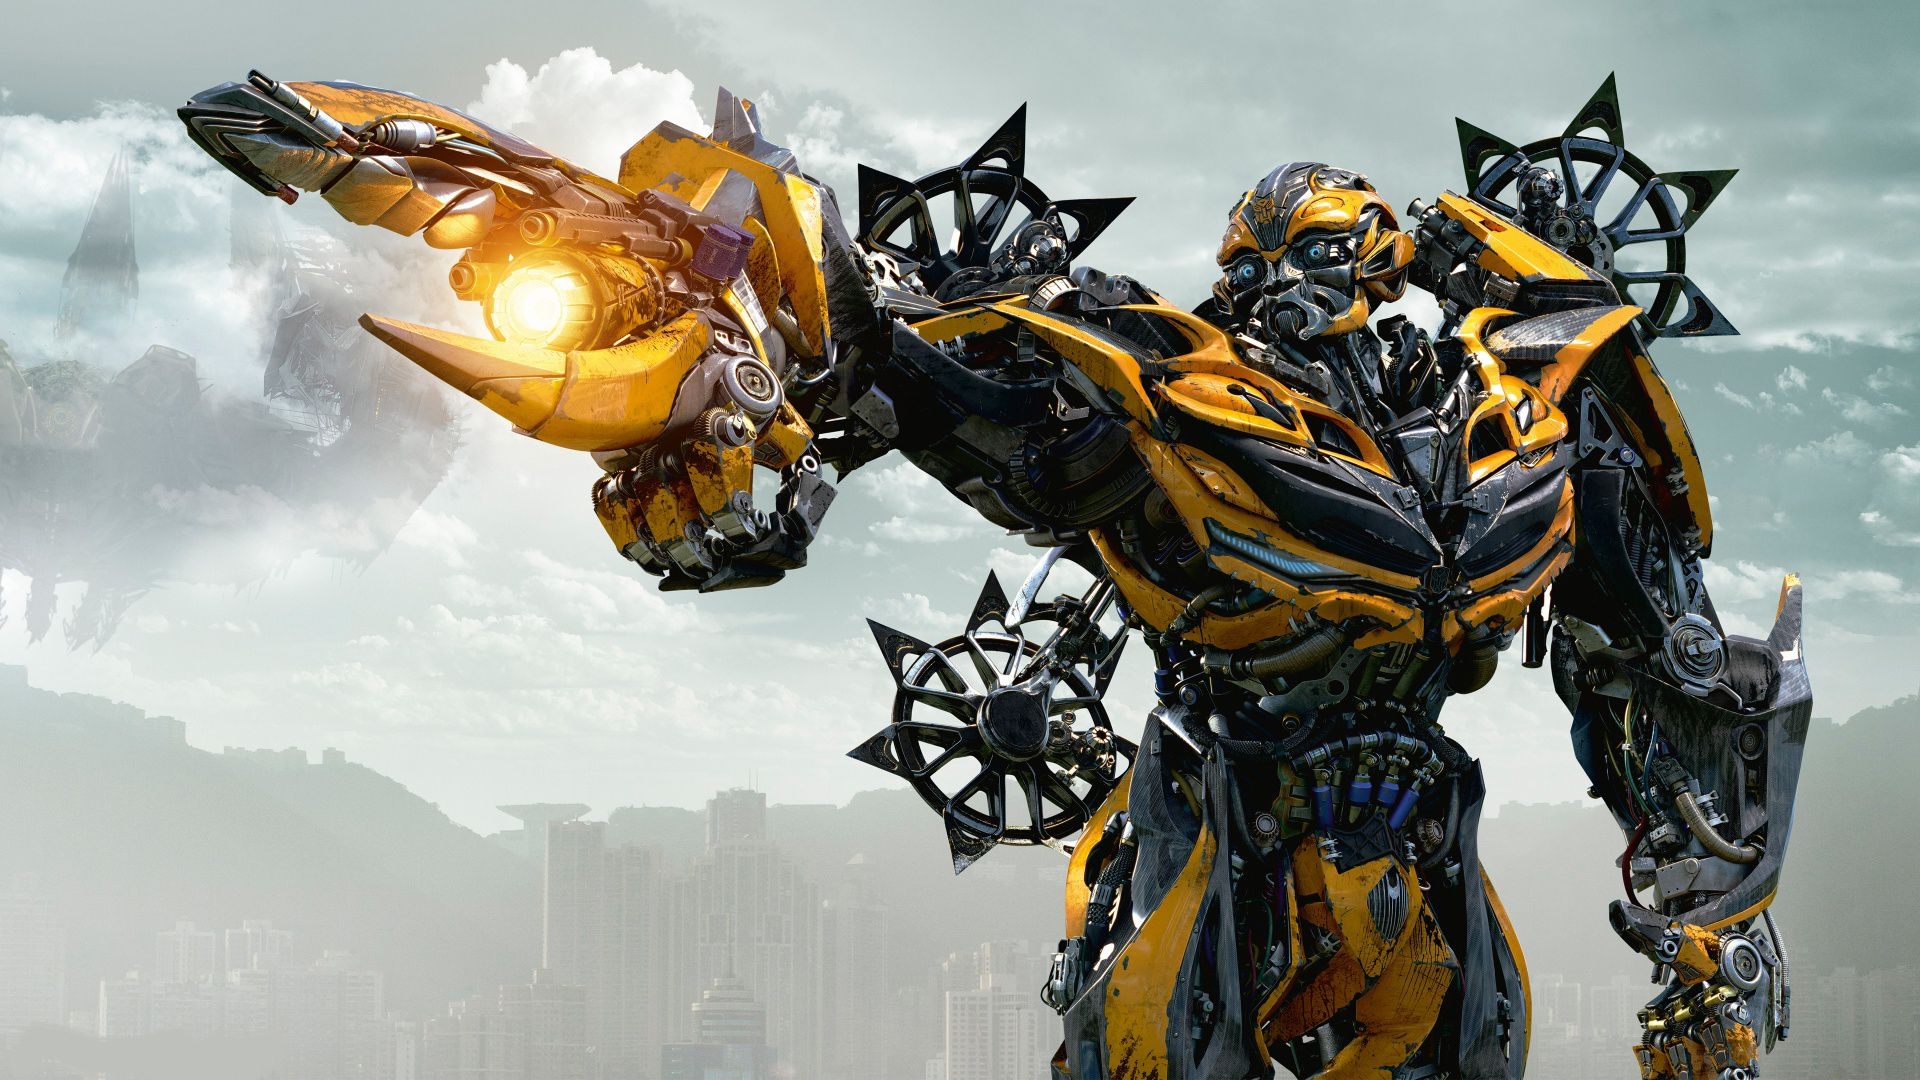 transformers 5 wallpapers high resolution and quality download | sci